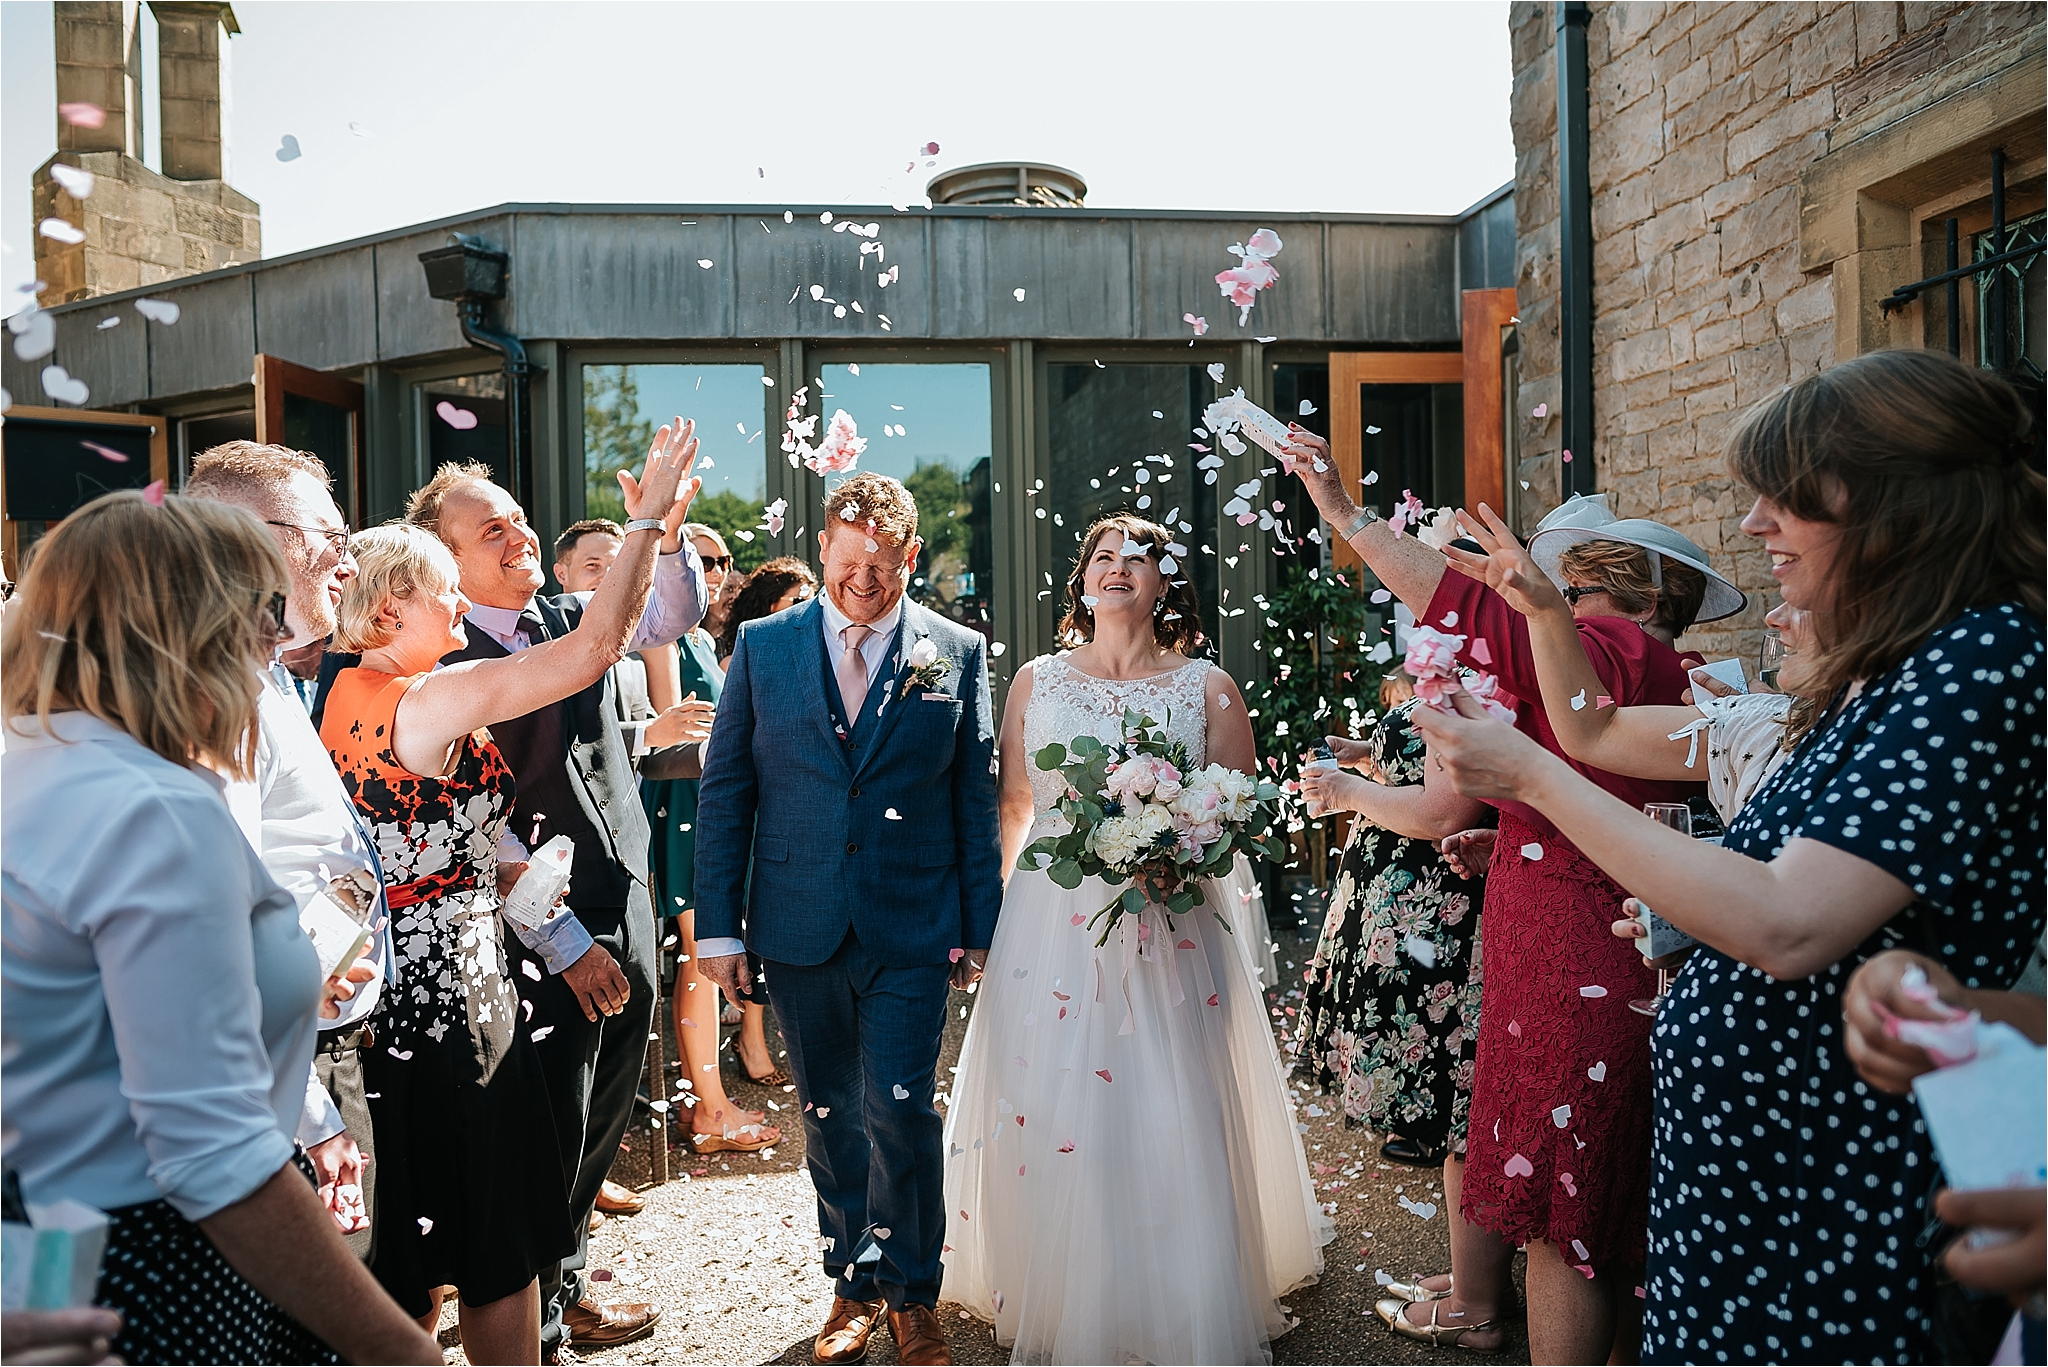 Bride and groom confetti shot at Clitheroe castle